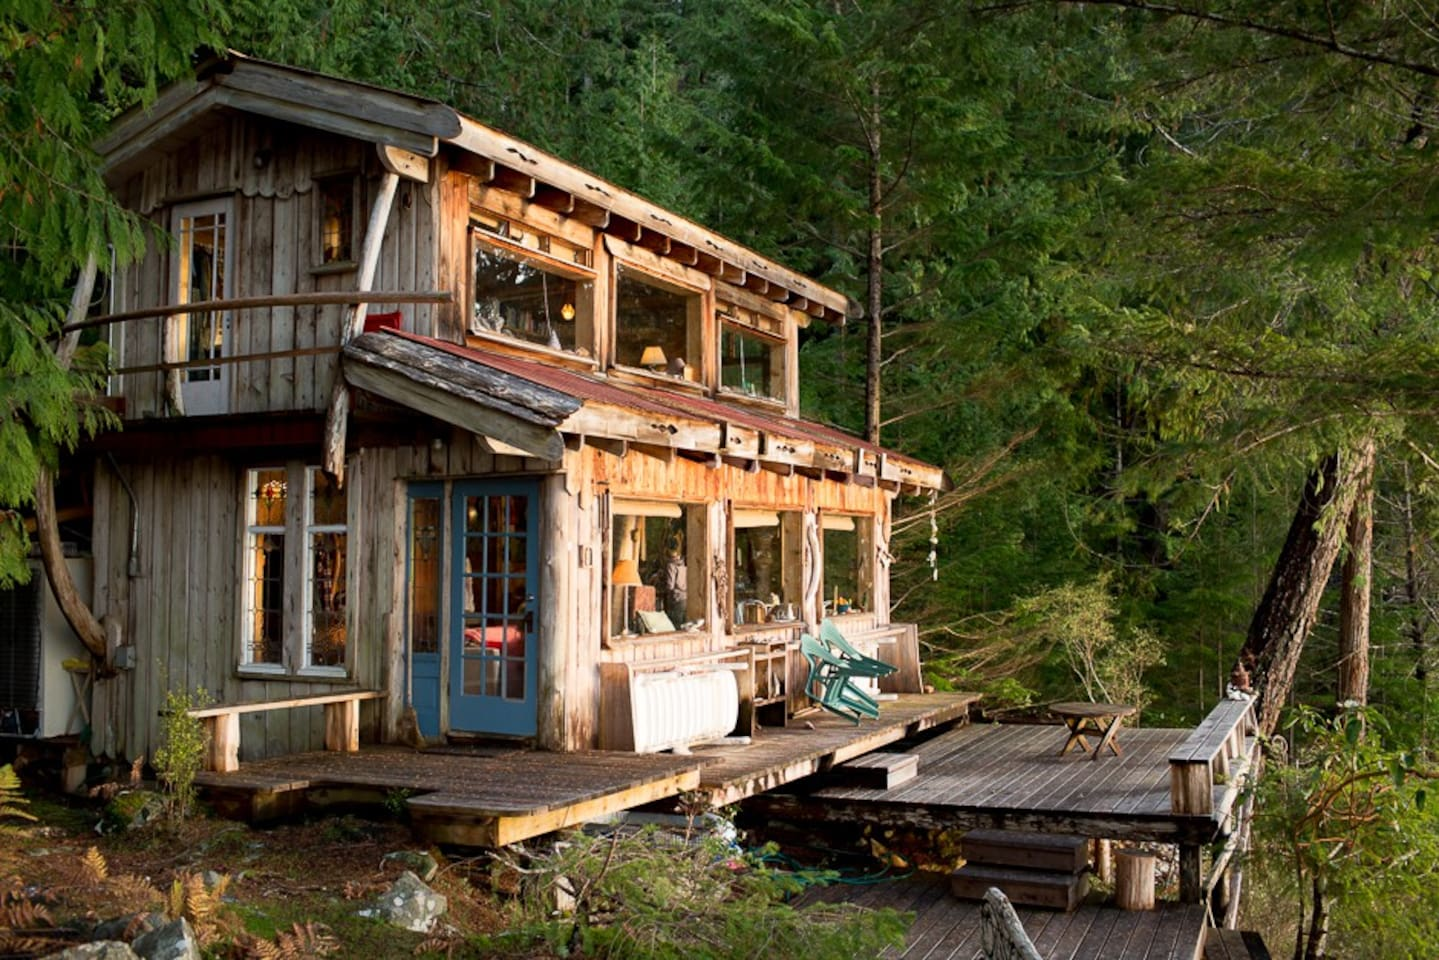 Cabin exterior, nestled in the trees with decks and windows overlooking Gorge Harbour.